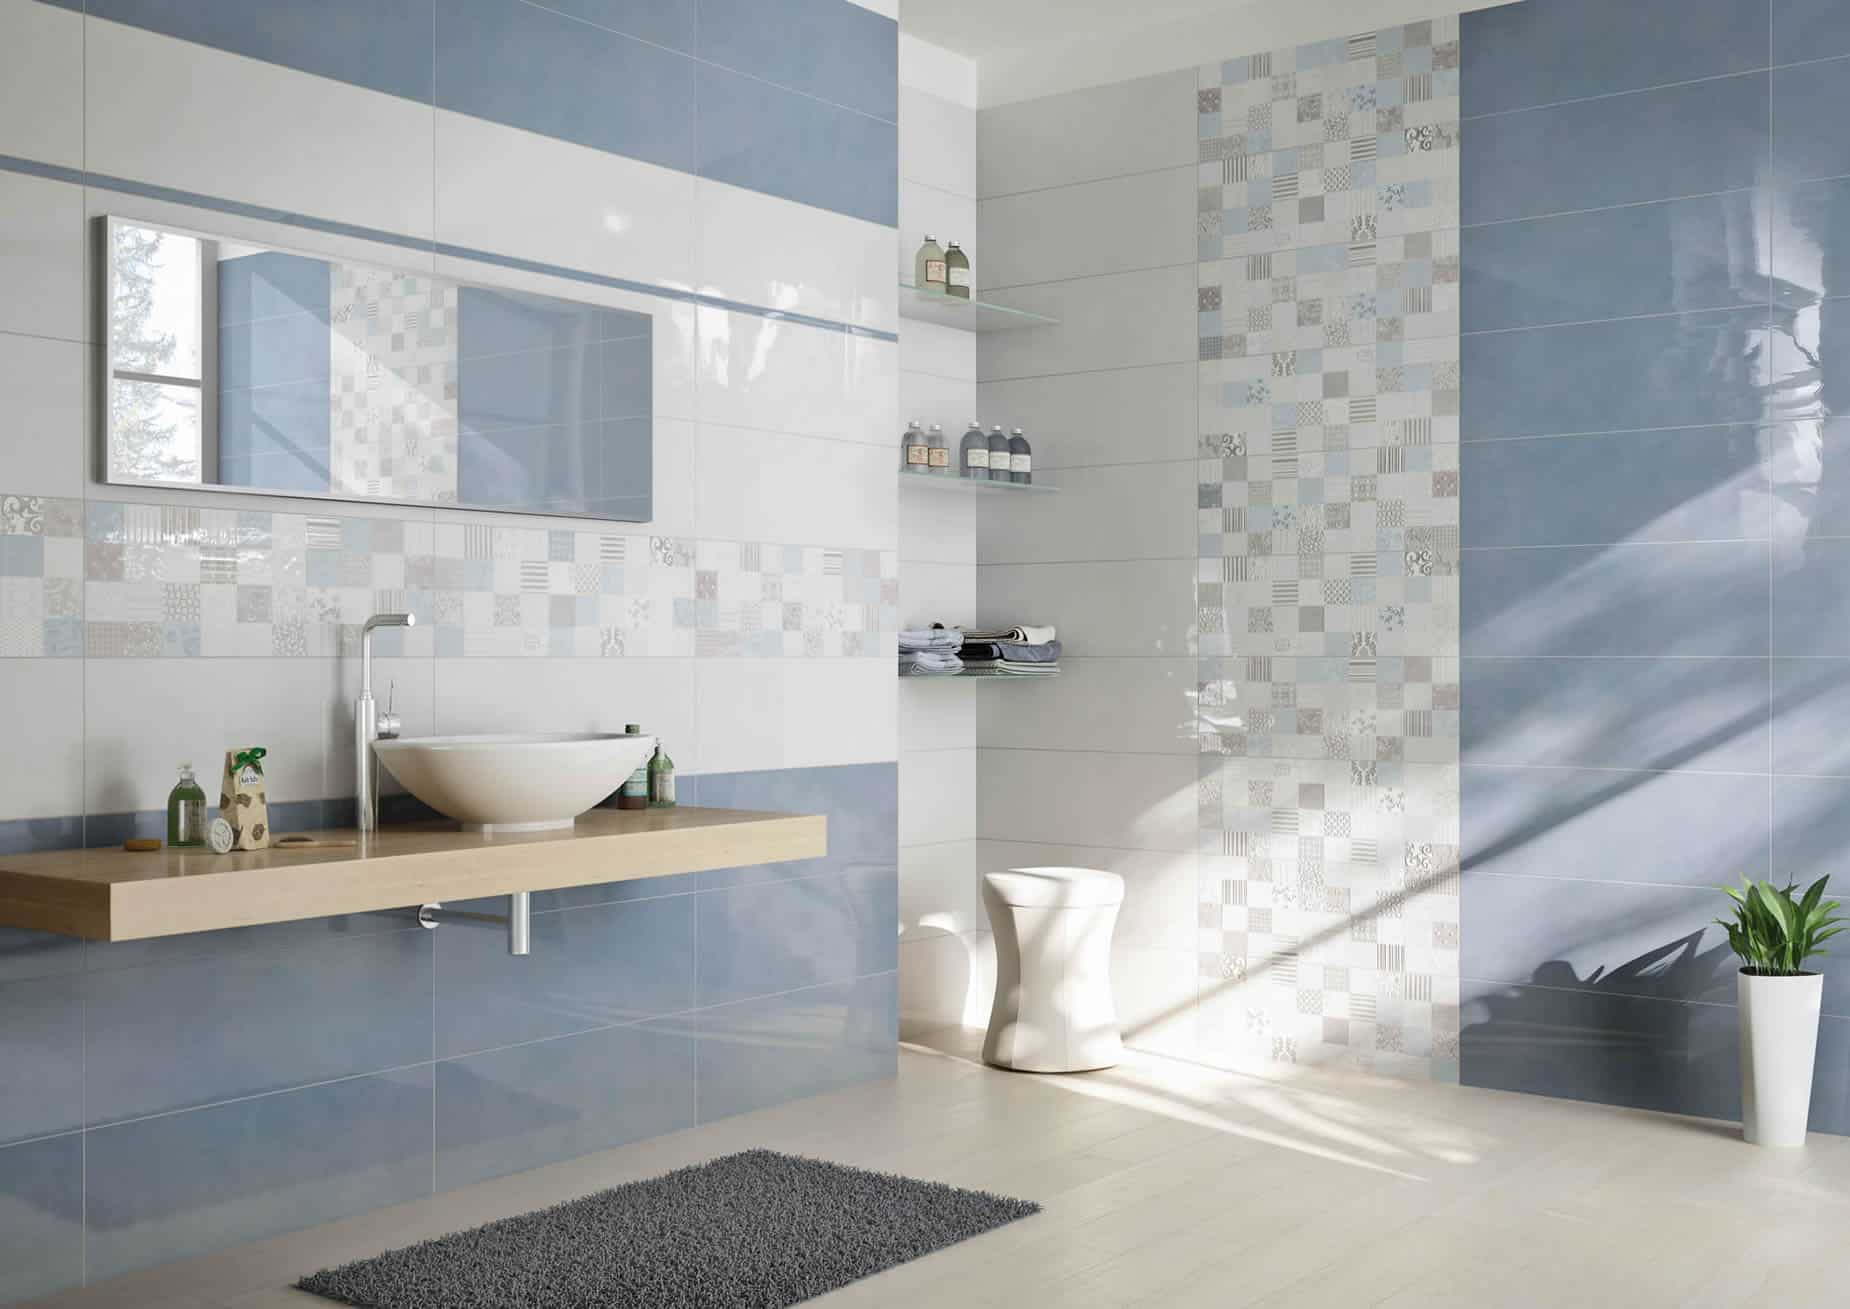 Design collection - Floor and wall tiles - Musis